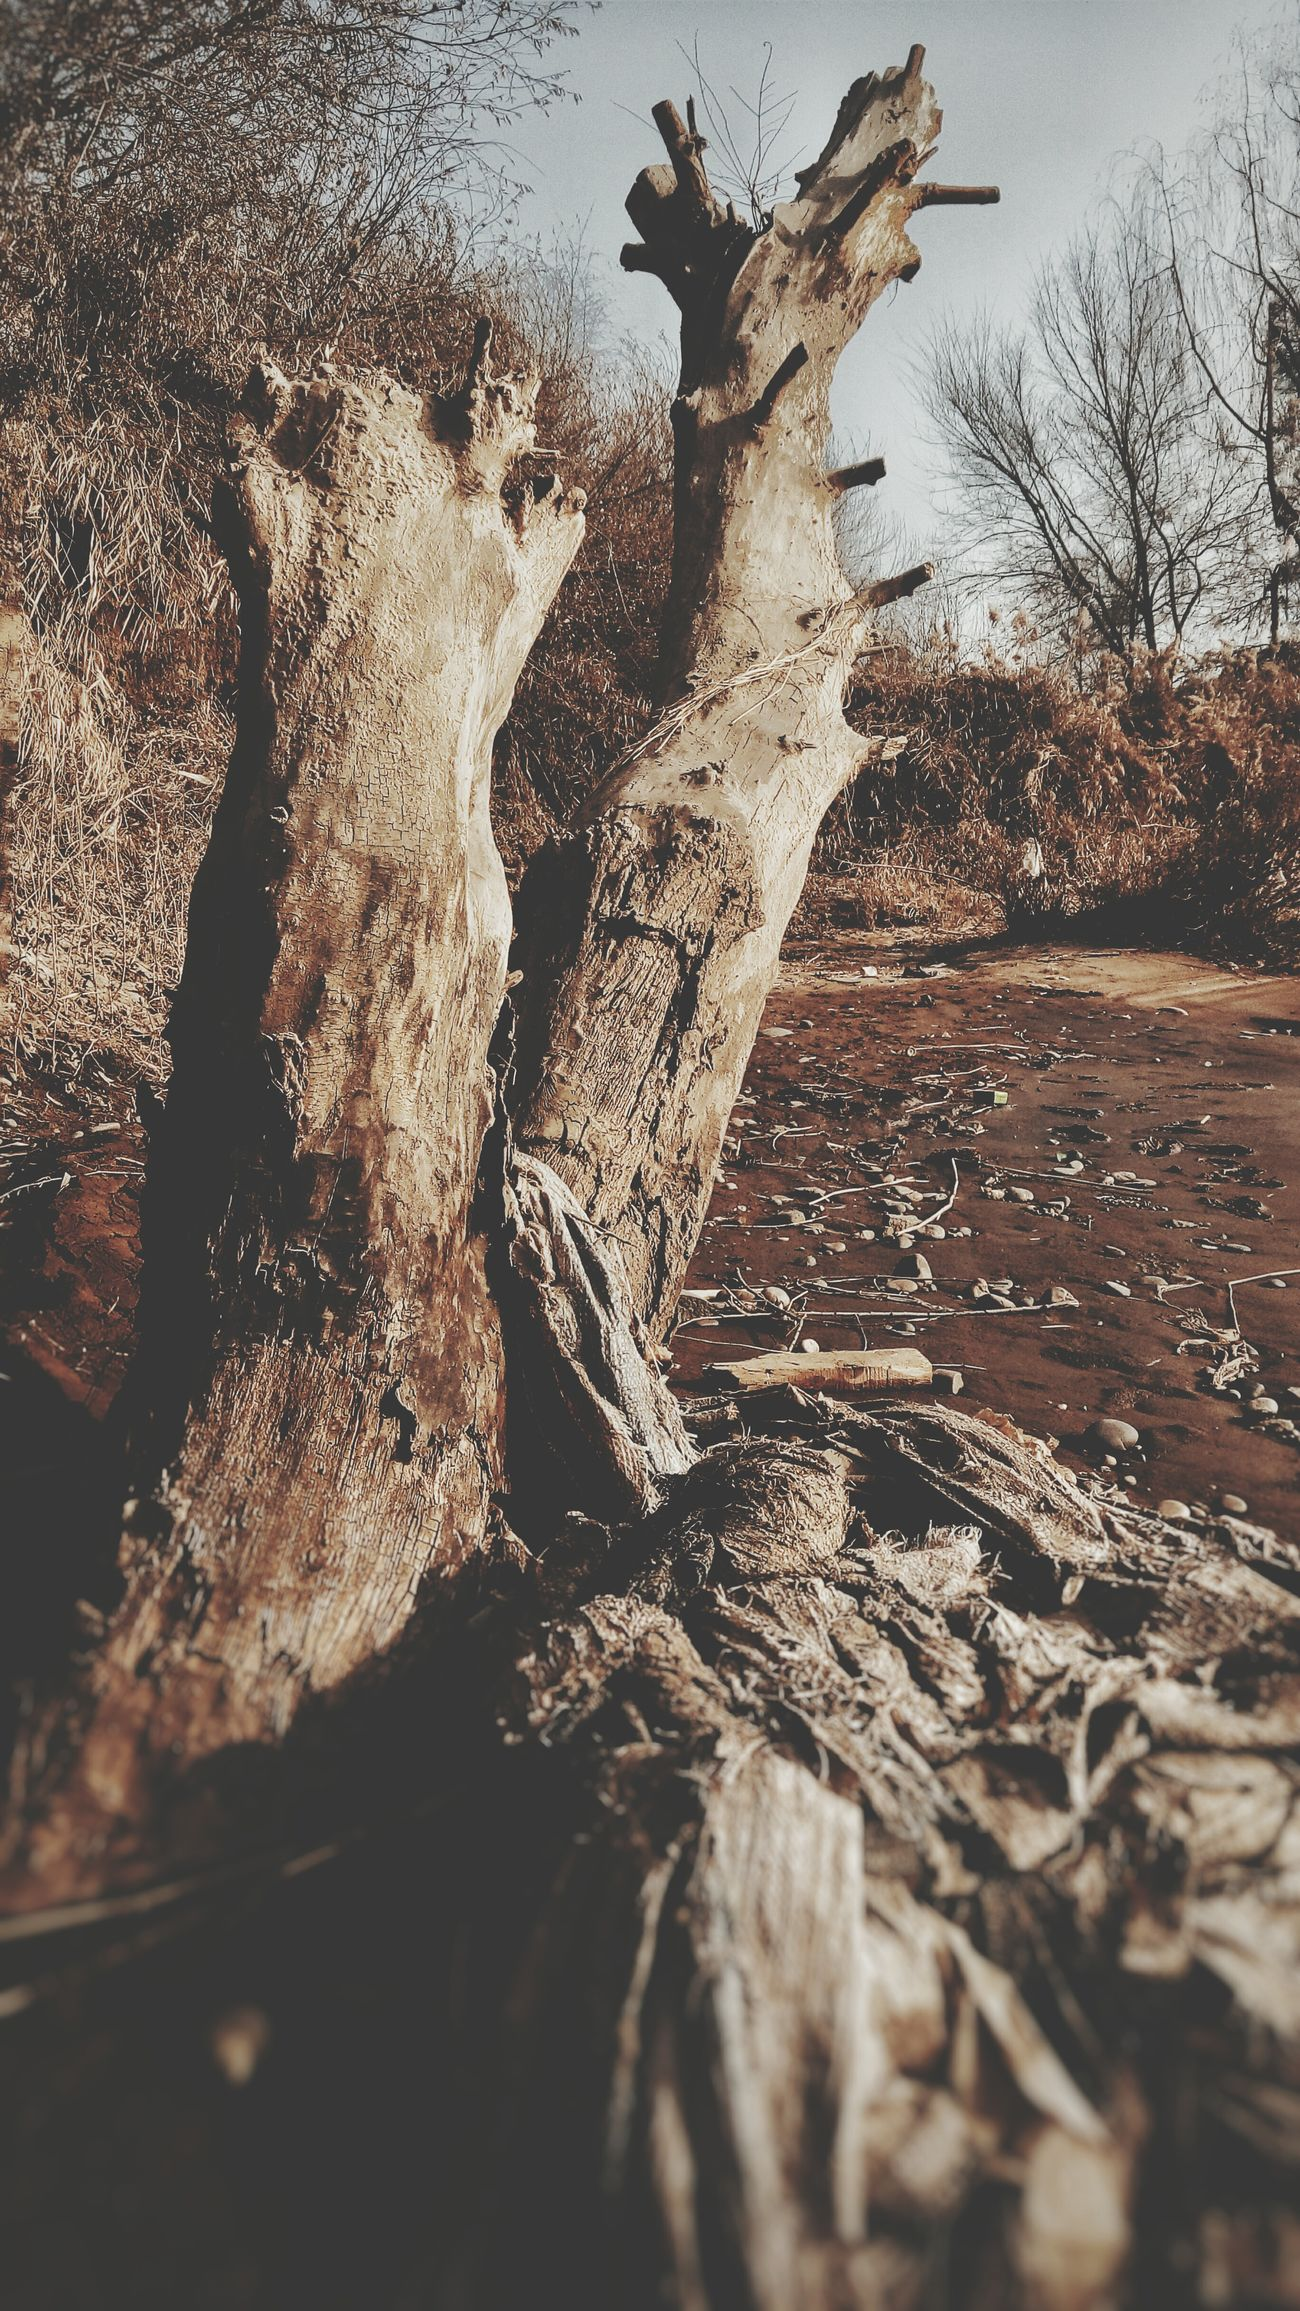 Riverside Dead Tree Hirst White Trash Garbage Outdoors Original Experiences Smartphone Photography Walking Around And Taking Pictures Sunny Day 🌞 Wintertime